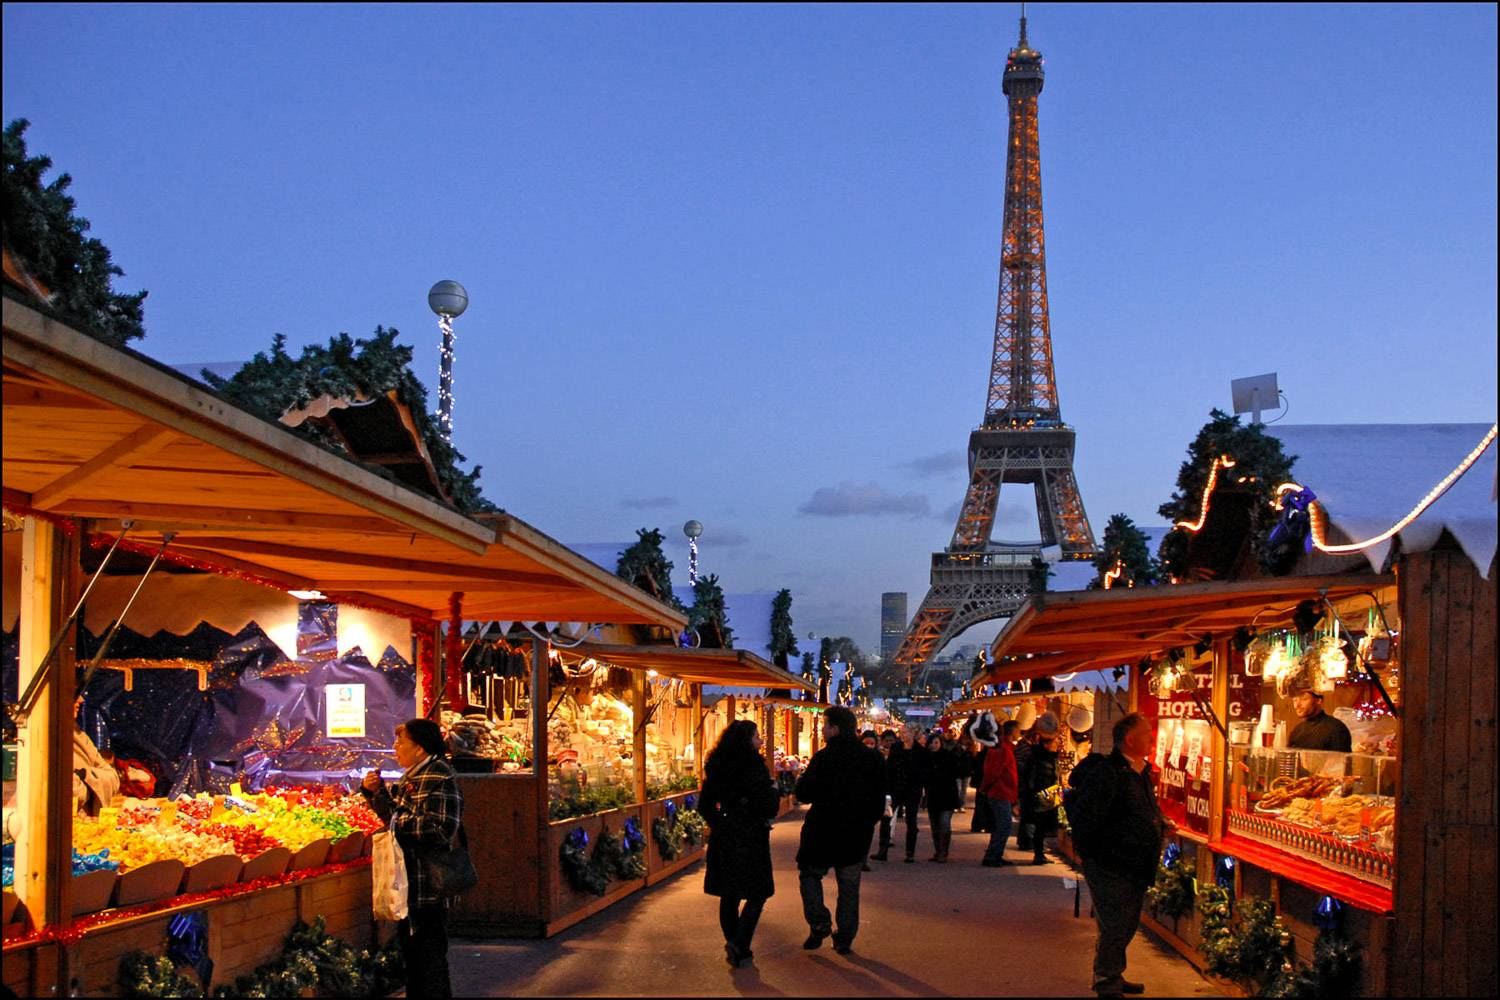 Image of chalets displaying food items and products to sell in a Christmas Market with the Eiffel Tower in the background.